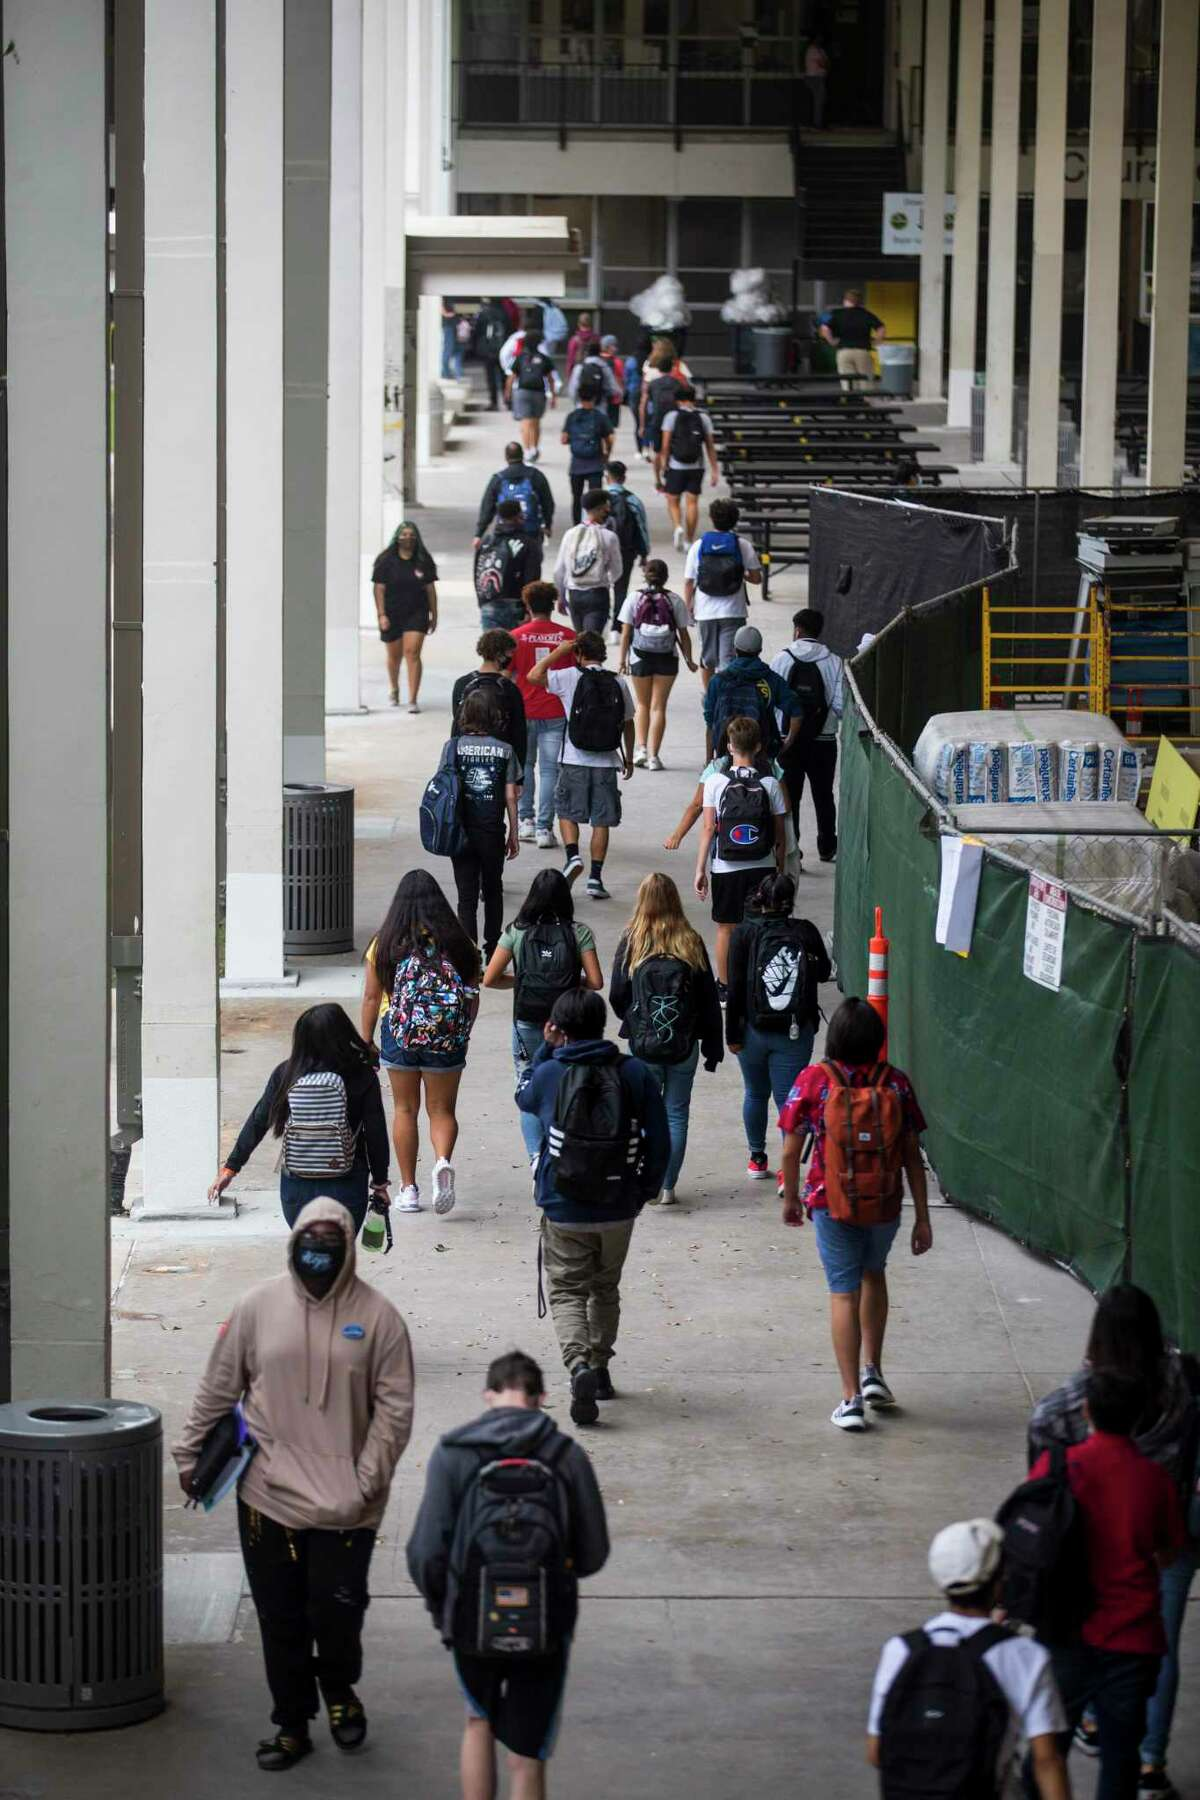 Students pass between classes on the first day of in-person classes at Spring Woods High School Tuesday, Sept. 8, 2020 in Houston.